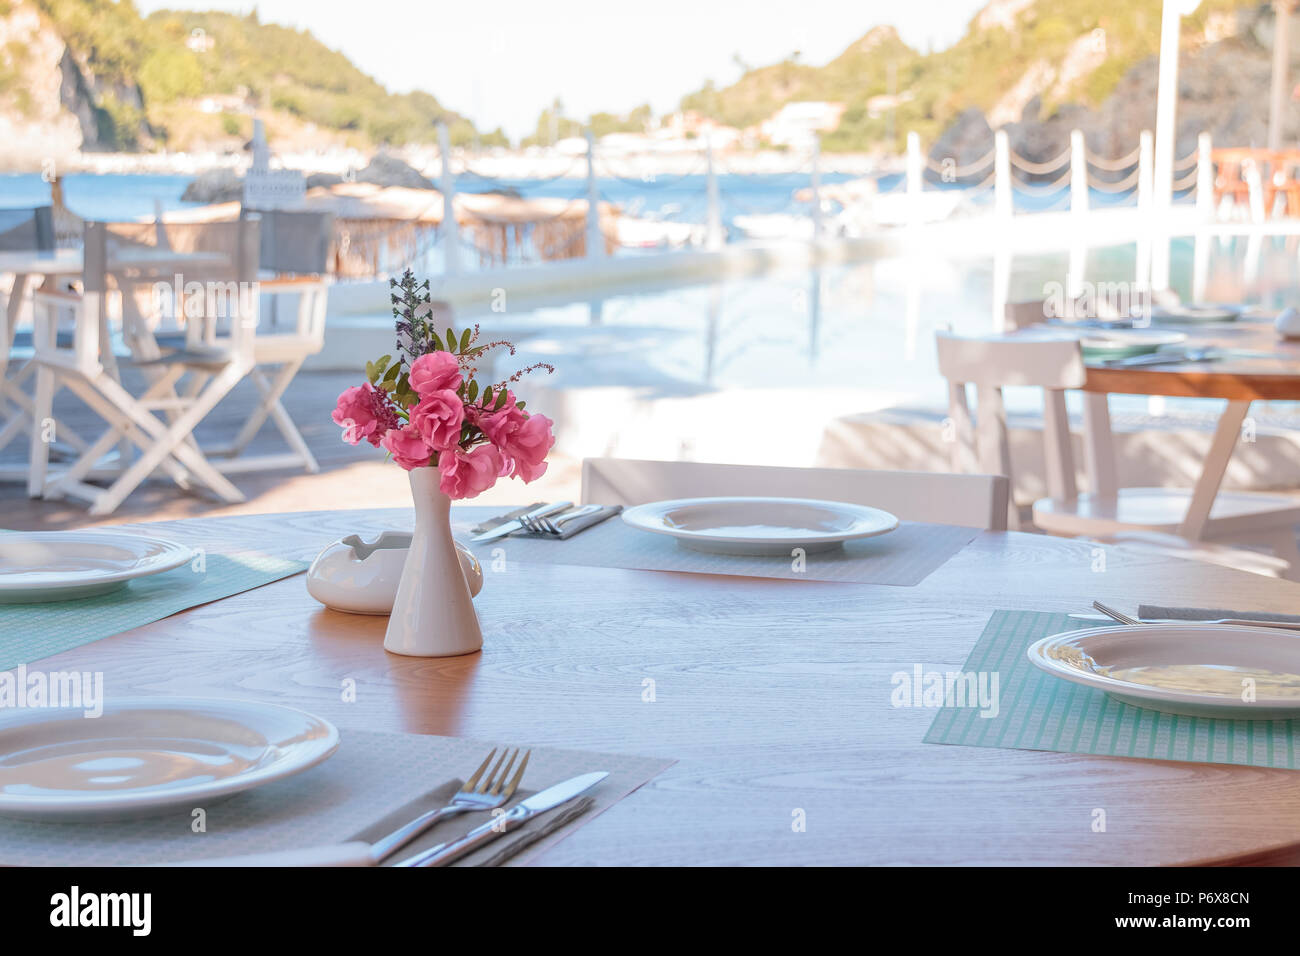 Summer Terrace Of The Restaurant On The Tables Laying With White Plates Of Wine Glasses And